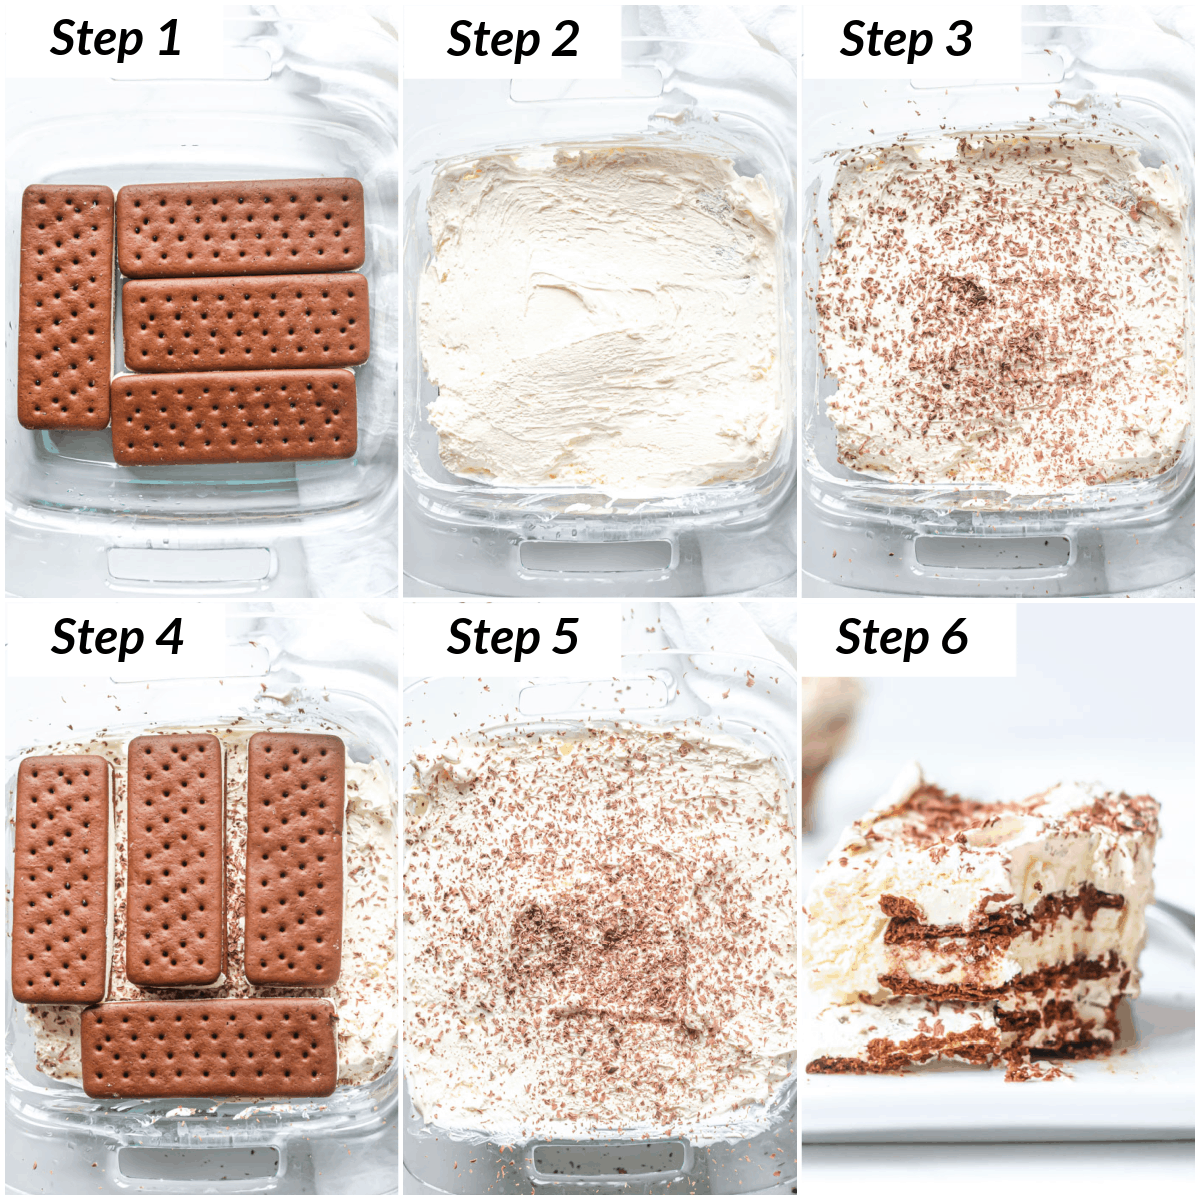 image collage showing the steps for making ice cream sandwich cake